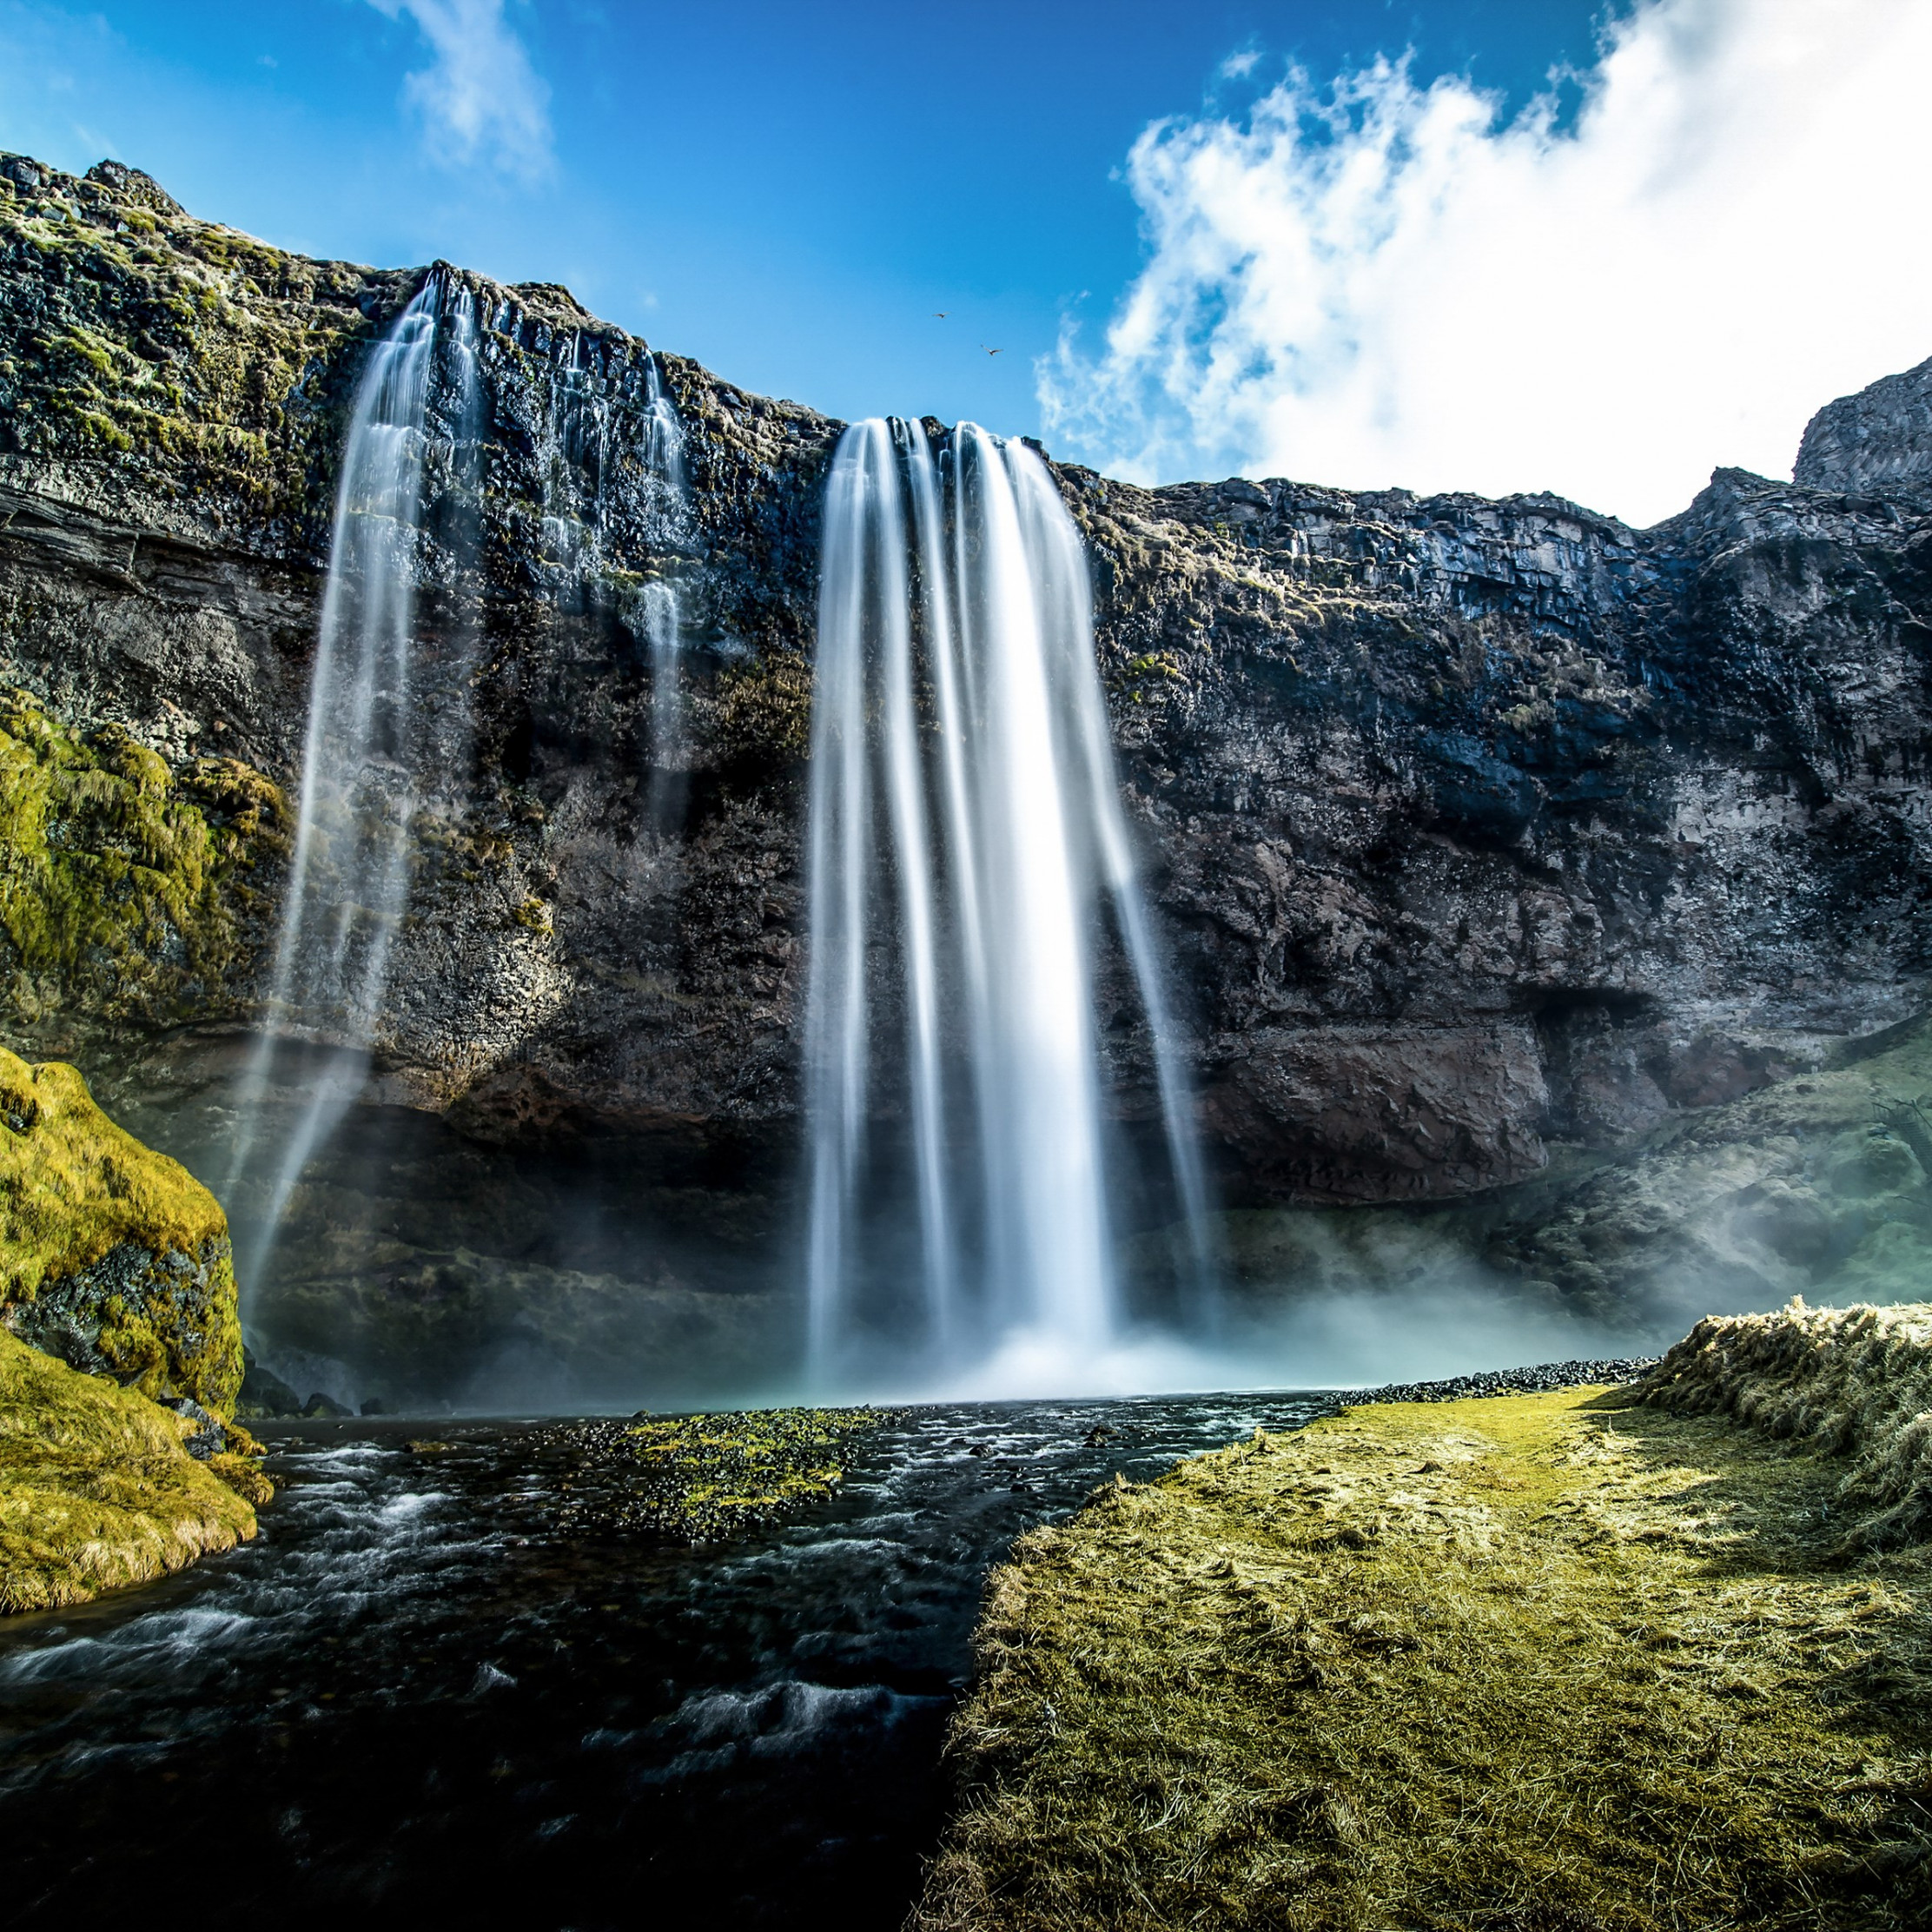 Seljalandsfoss waterfall in Iceland | 2224x2224 wallpaper